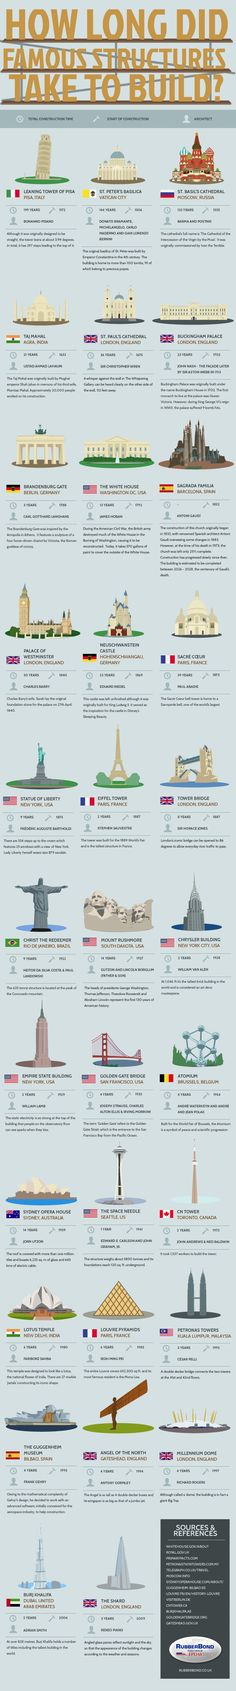 How Long Did Famous Structures Take to Build? INTRIGUING ARCHITECTURE long pin full of information about history of famous buildings across the centuries. #DdO:) - www.pinterest.com... - DATES and names of ARCHITECTS included, as well as less known fascinating info some people call #trivia. Pinned via Montbiz.. Source: infografía